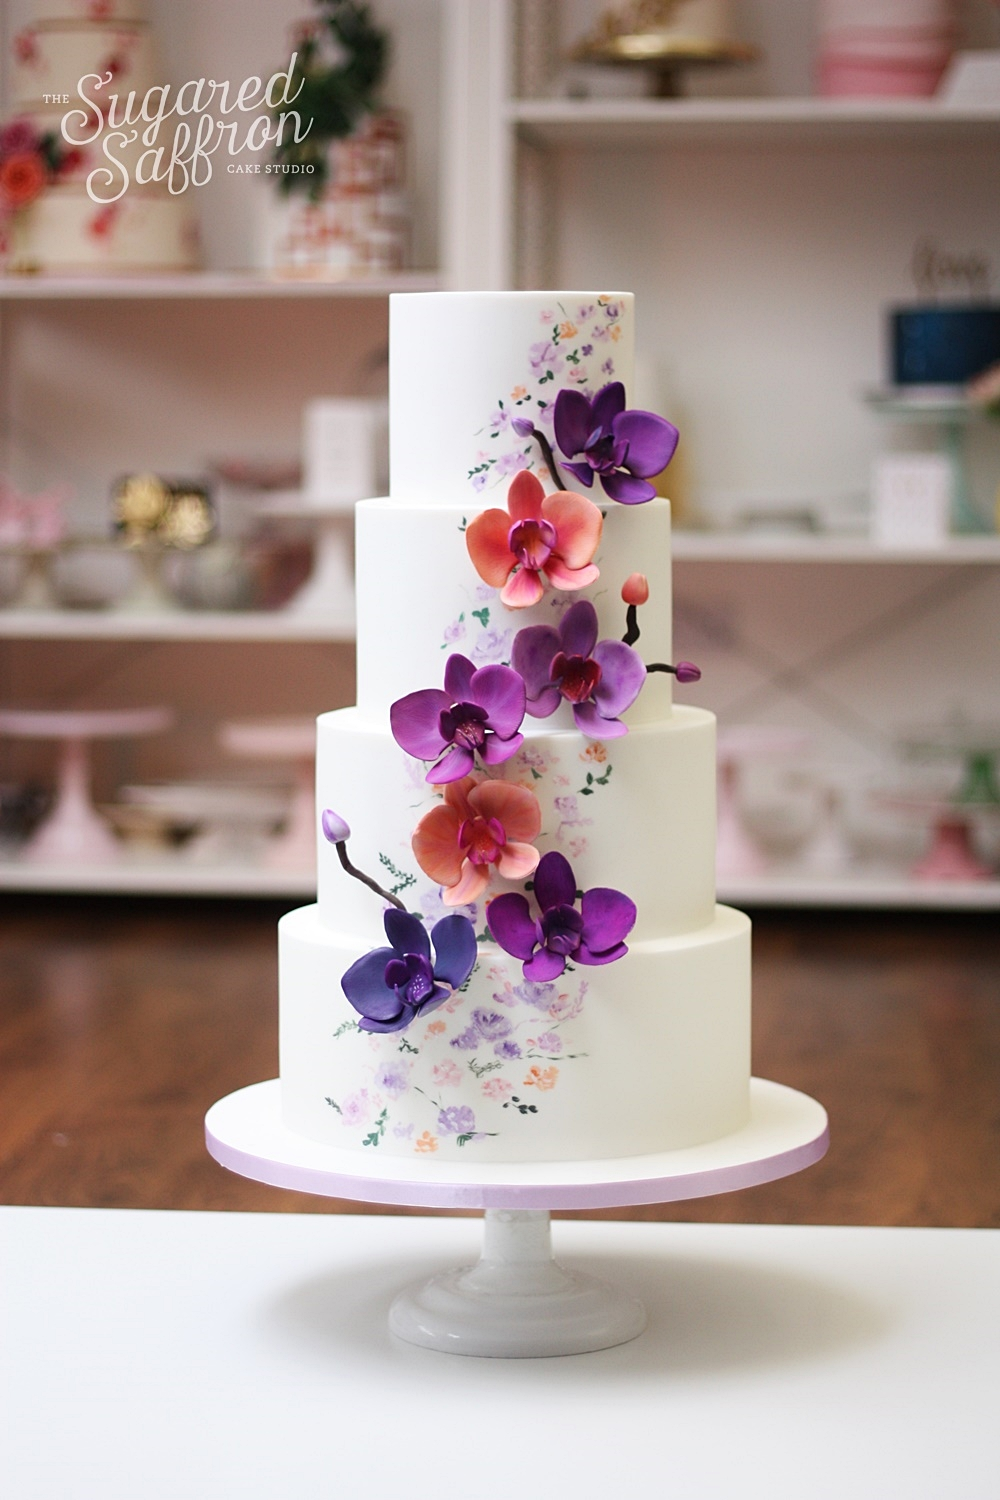 painted flowers on white cake with roses in purple and orange